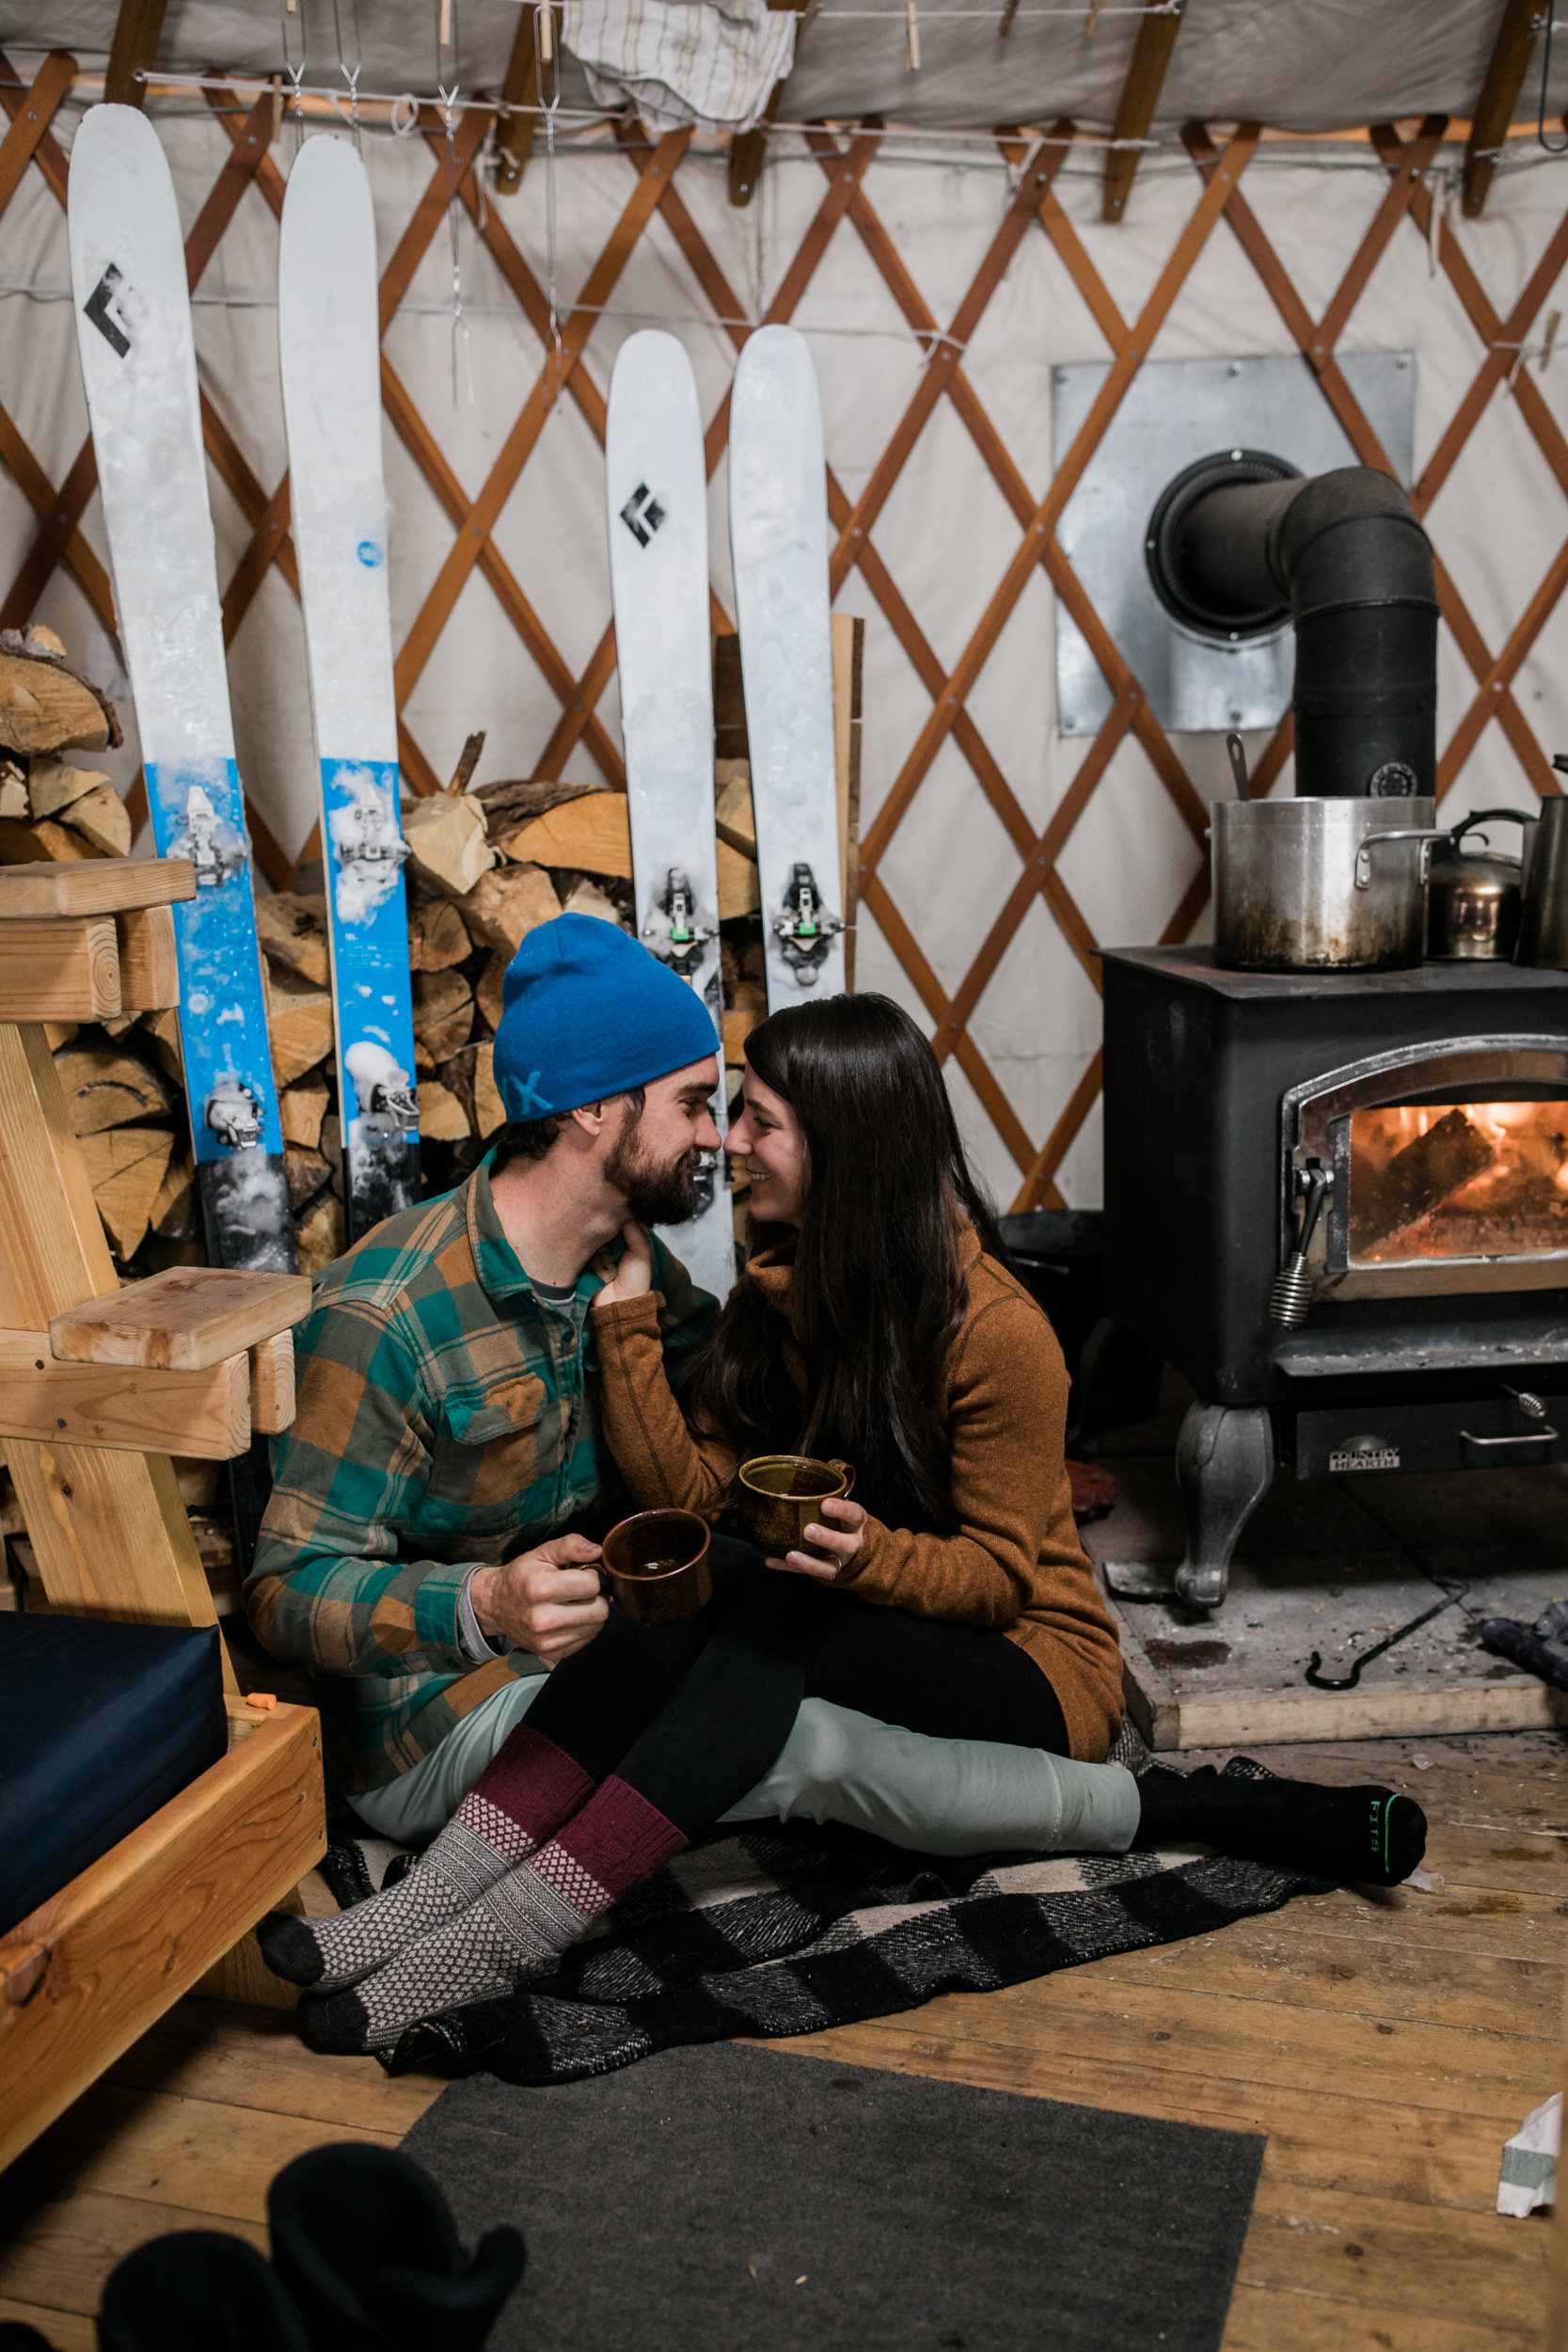 adventure engagement session cross country skiing in the mountains near moab | yurt elopement inspiration | the hearnes photography